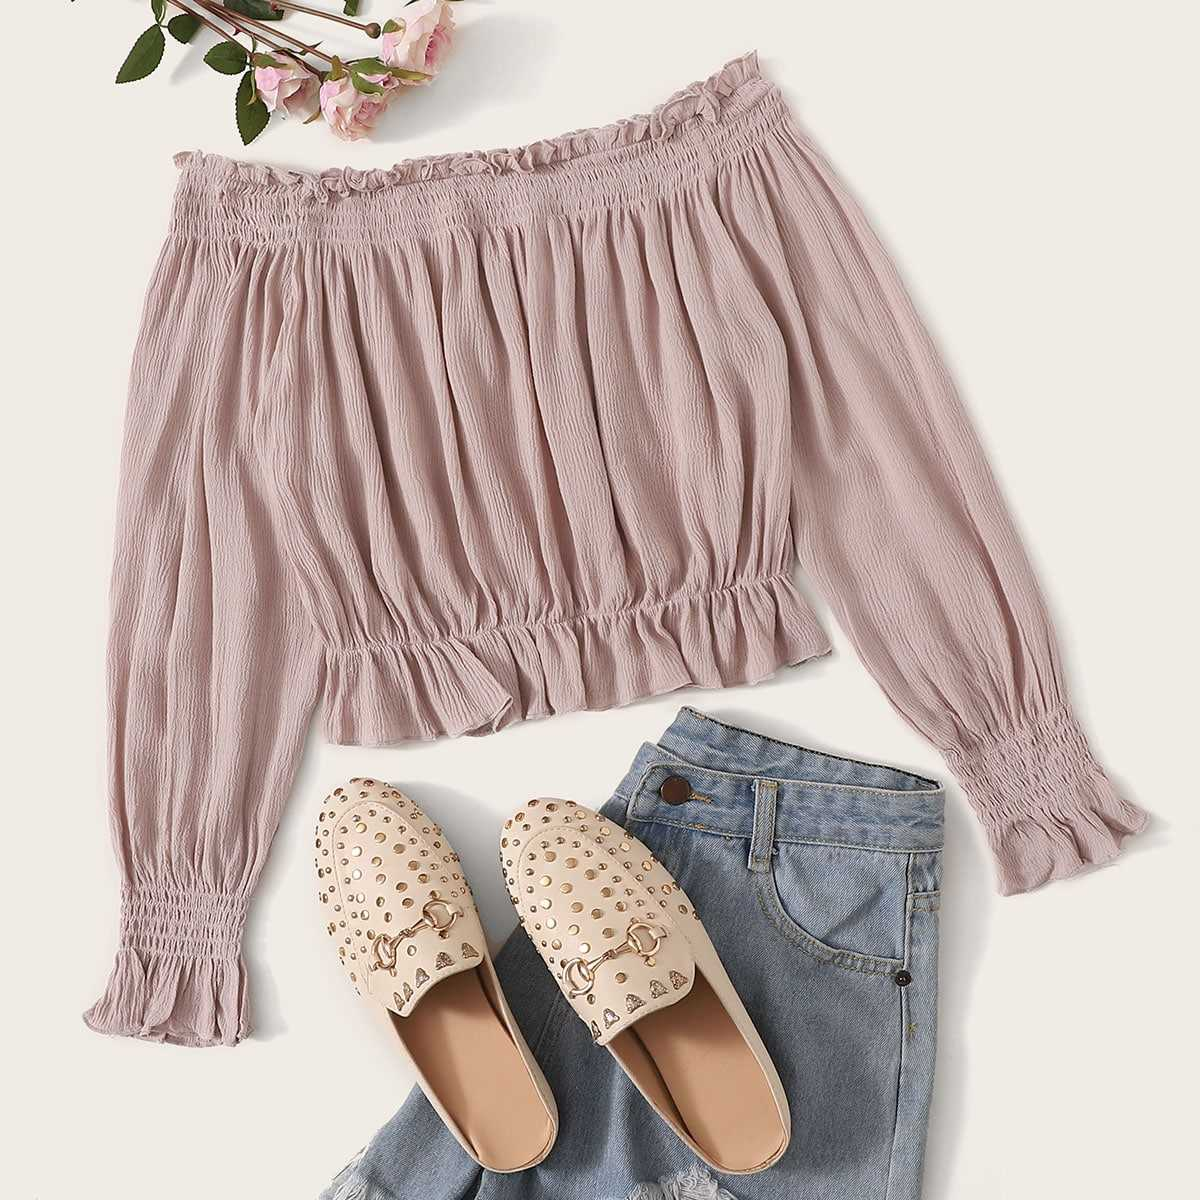 Frill Shirred Off Shoulder Blouse in Pink by ROMWE on GOOFASH